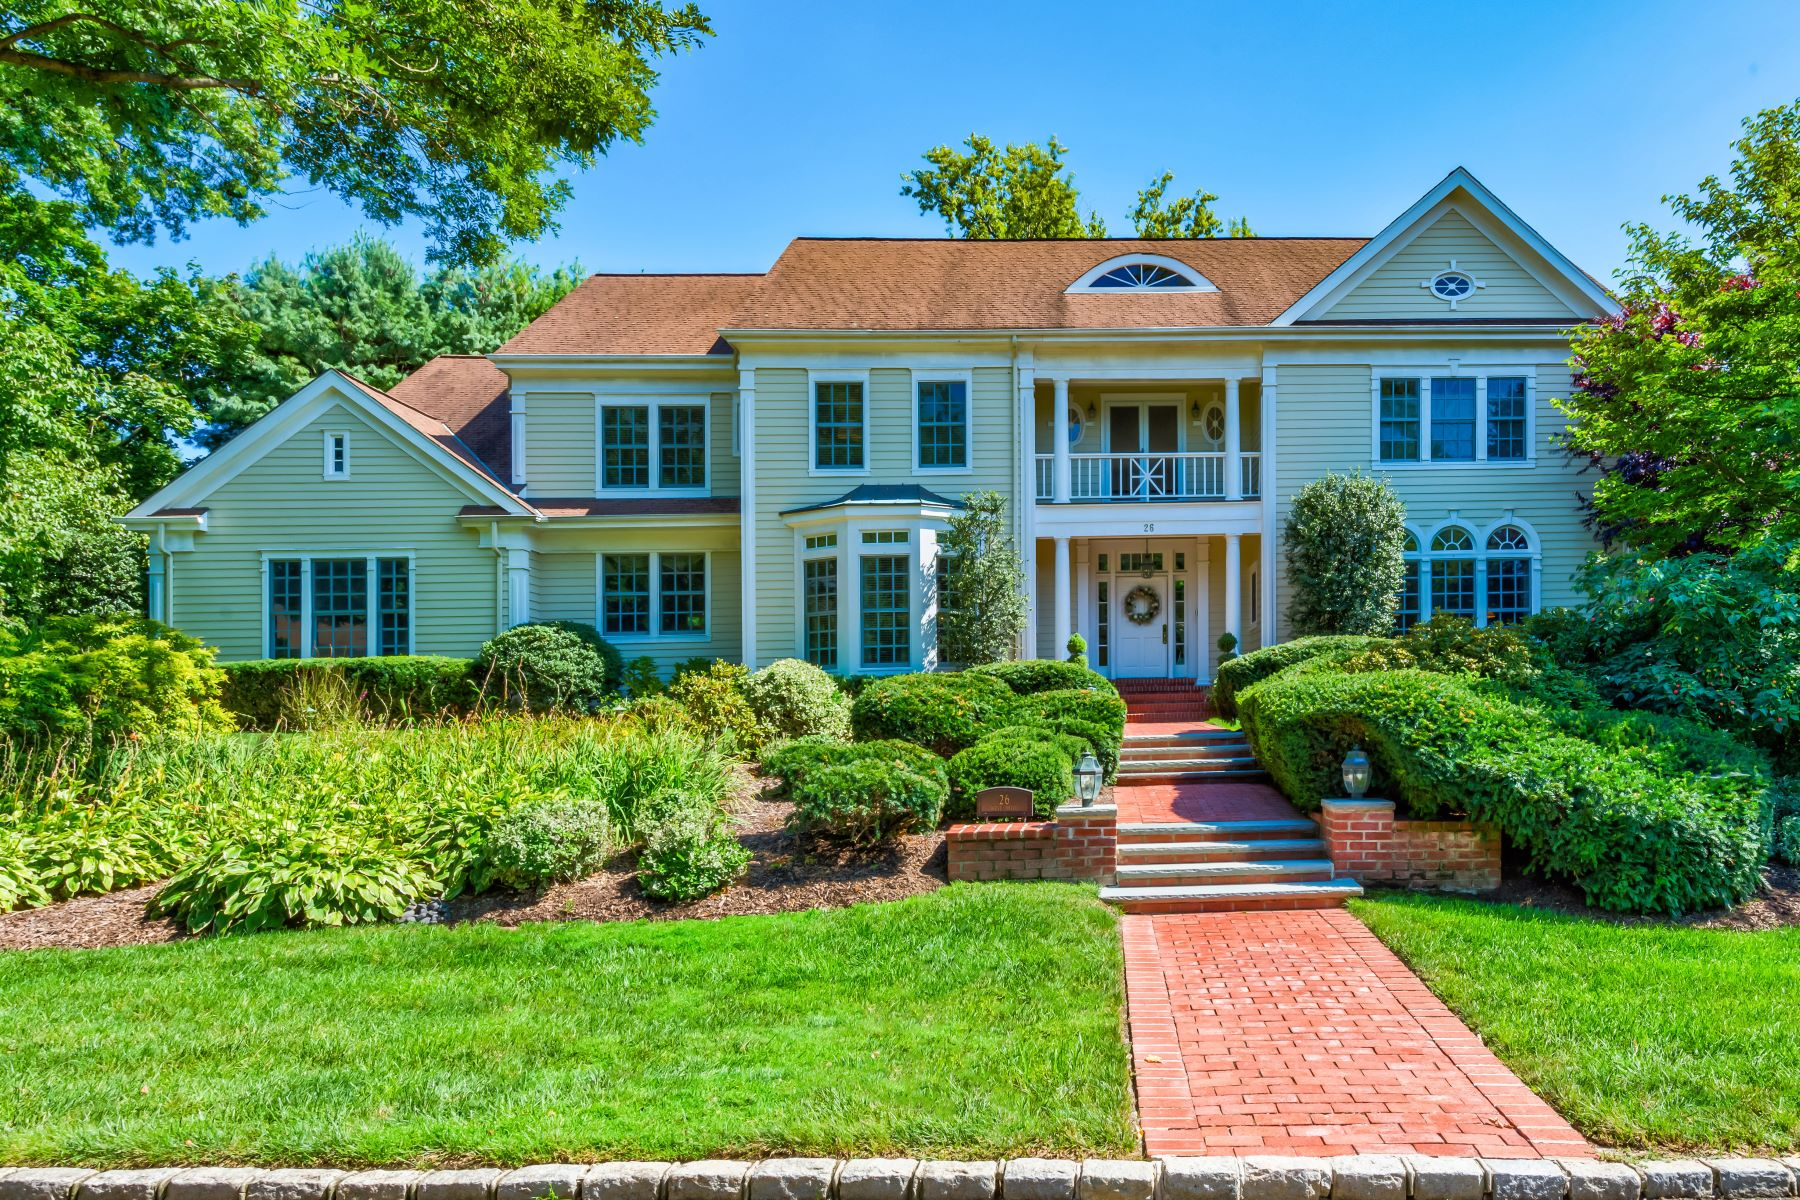 Single Family Homes for Sale at Manhasset 26 West Dr Manhasset, New York 11030 United States